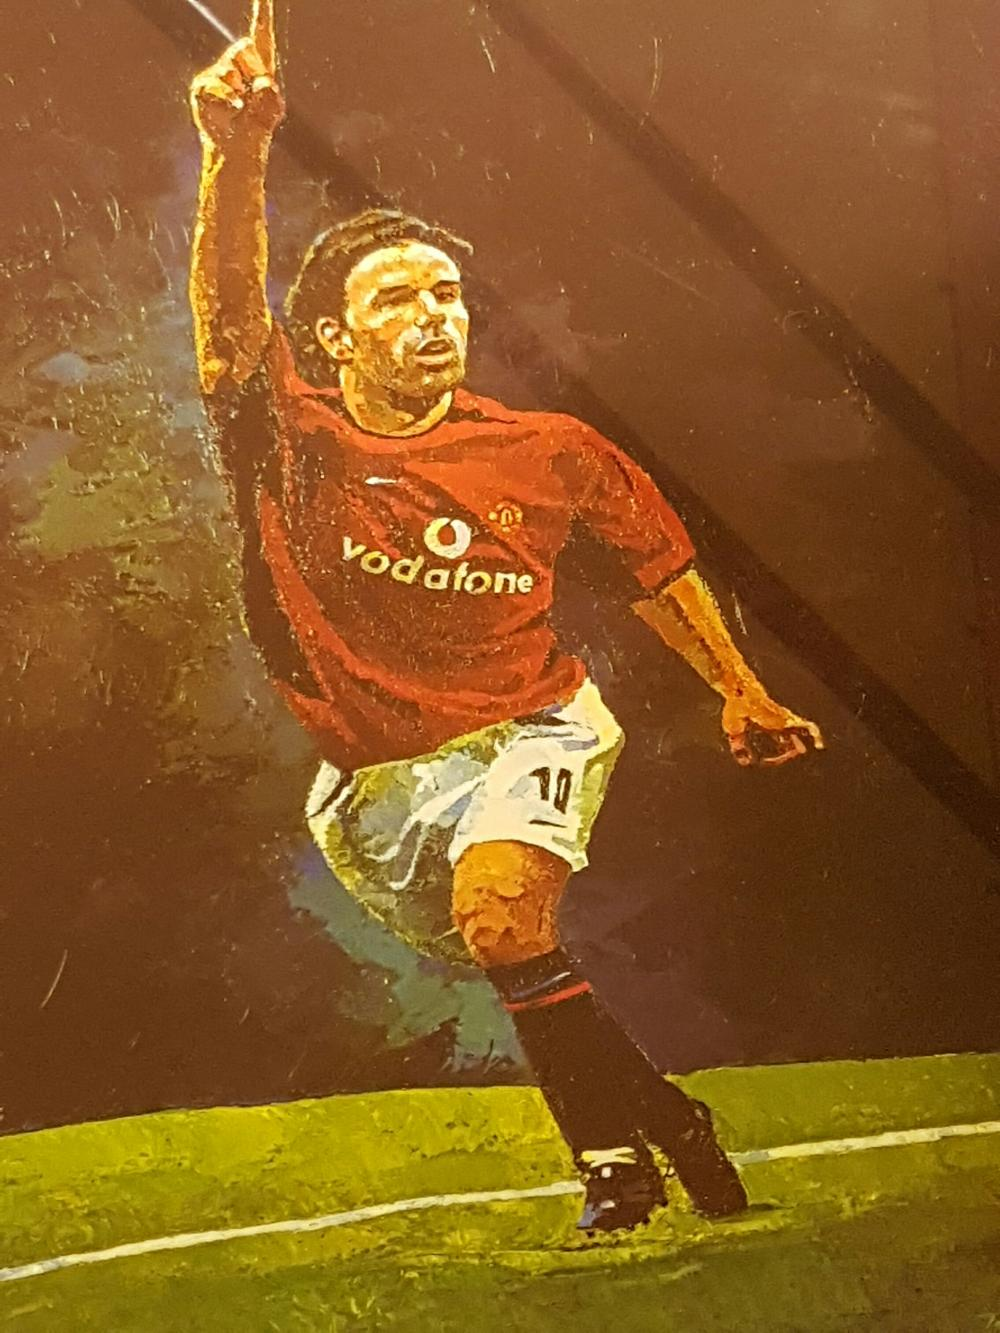 "Lot 153: Signed and Framed Ruud Van Nistelrooy print. Rutgerus Johannes Martinus """"Ruud"""" van Nistelrooy (Dutch: Ruud van Nistelrooij; About this sound listen);[2] born 1 July 1976) is a retired Dutch footballer and a current"